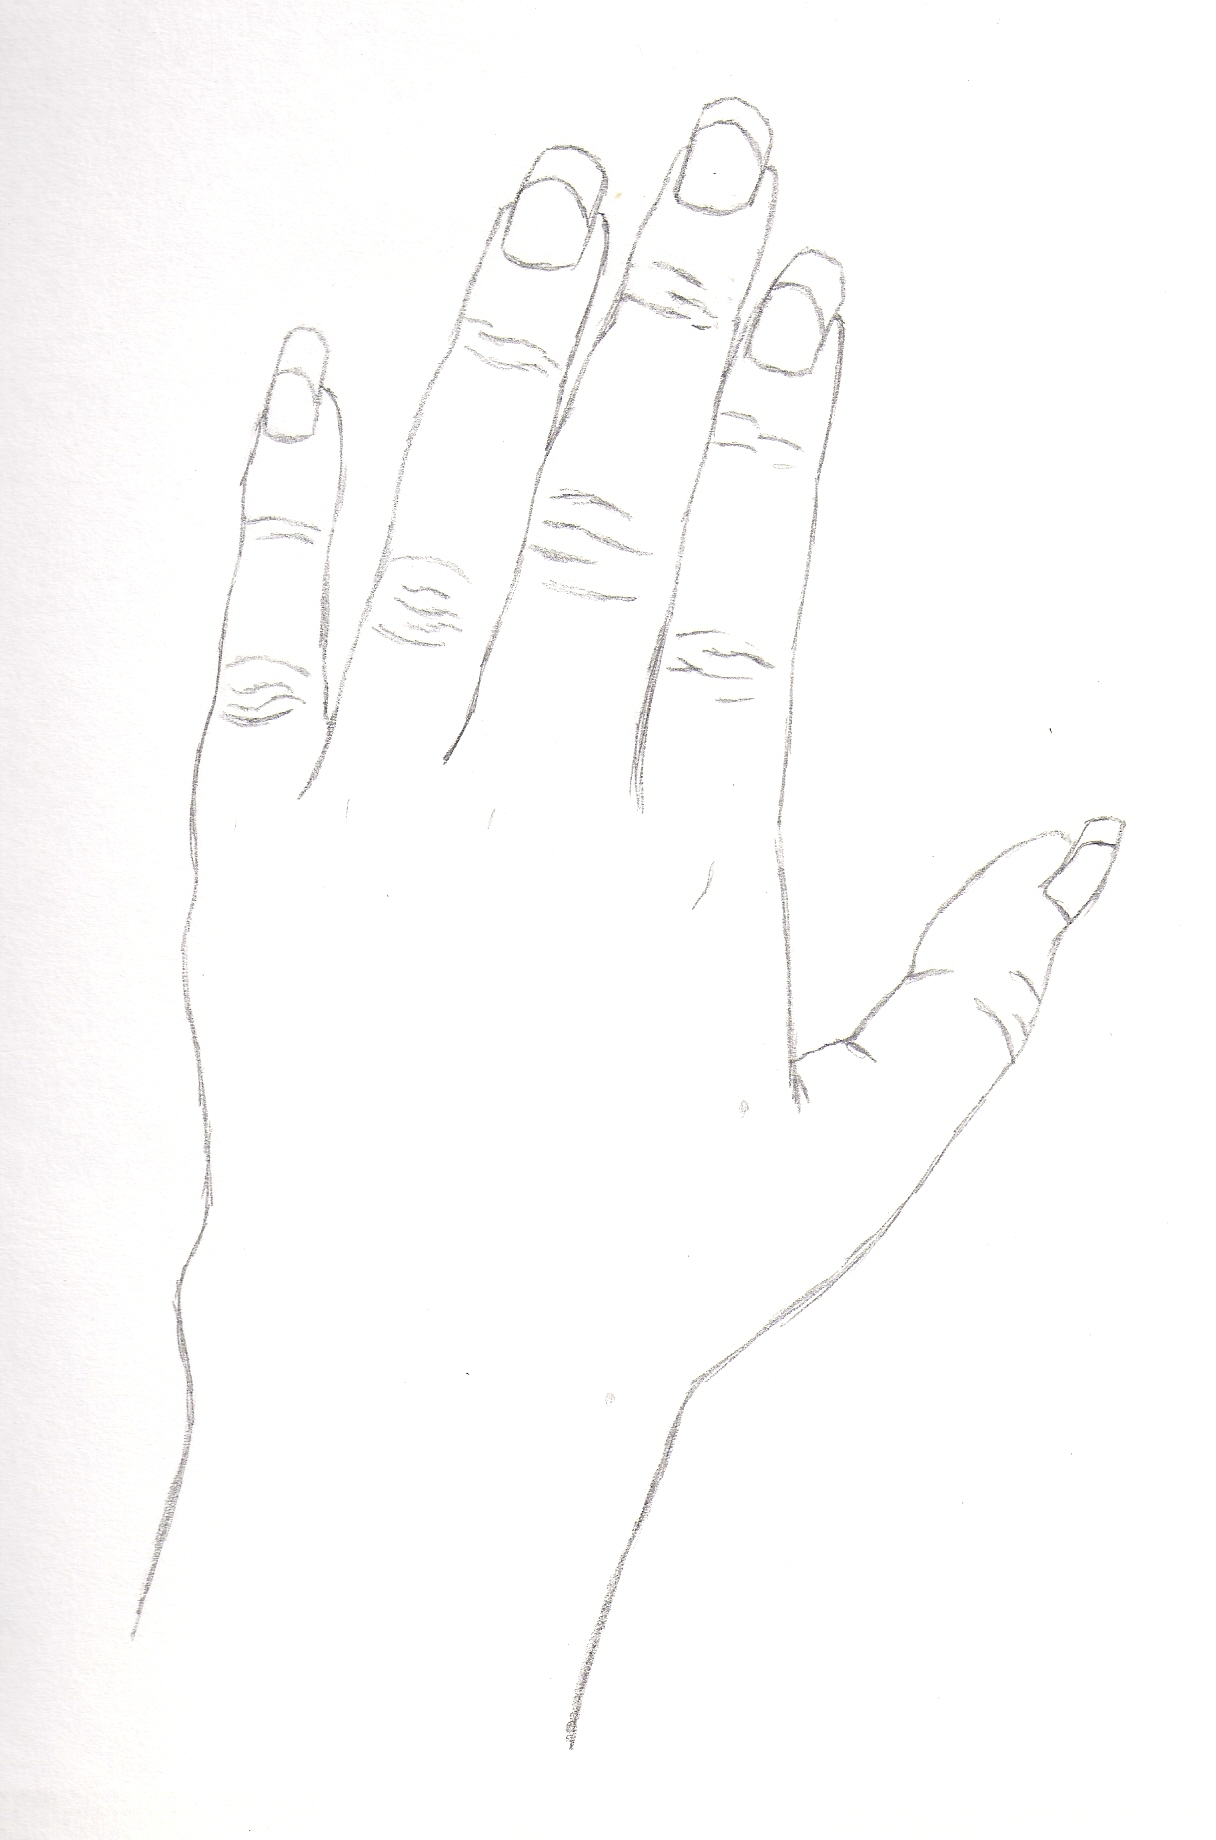 Contour Line Drawing Demo : Contour line hand by aurath on deviantart